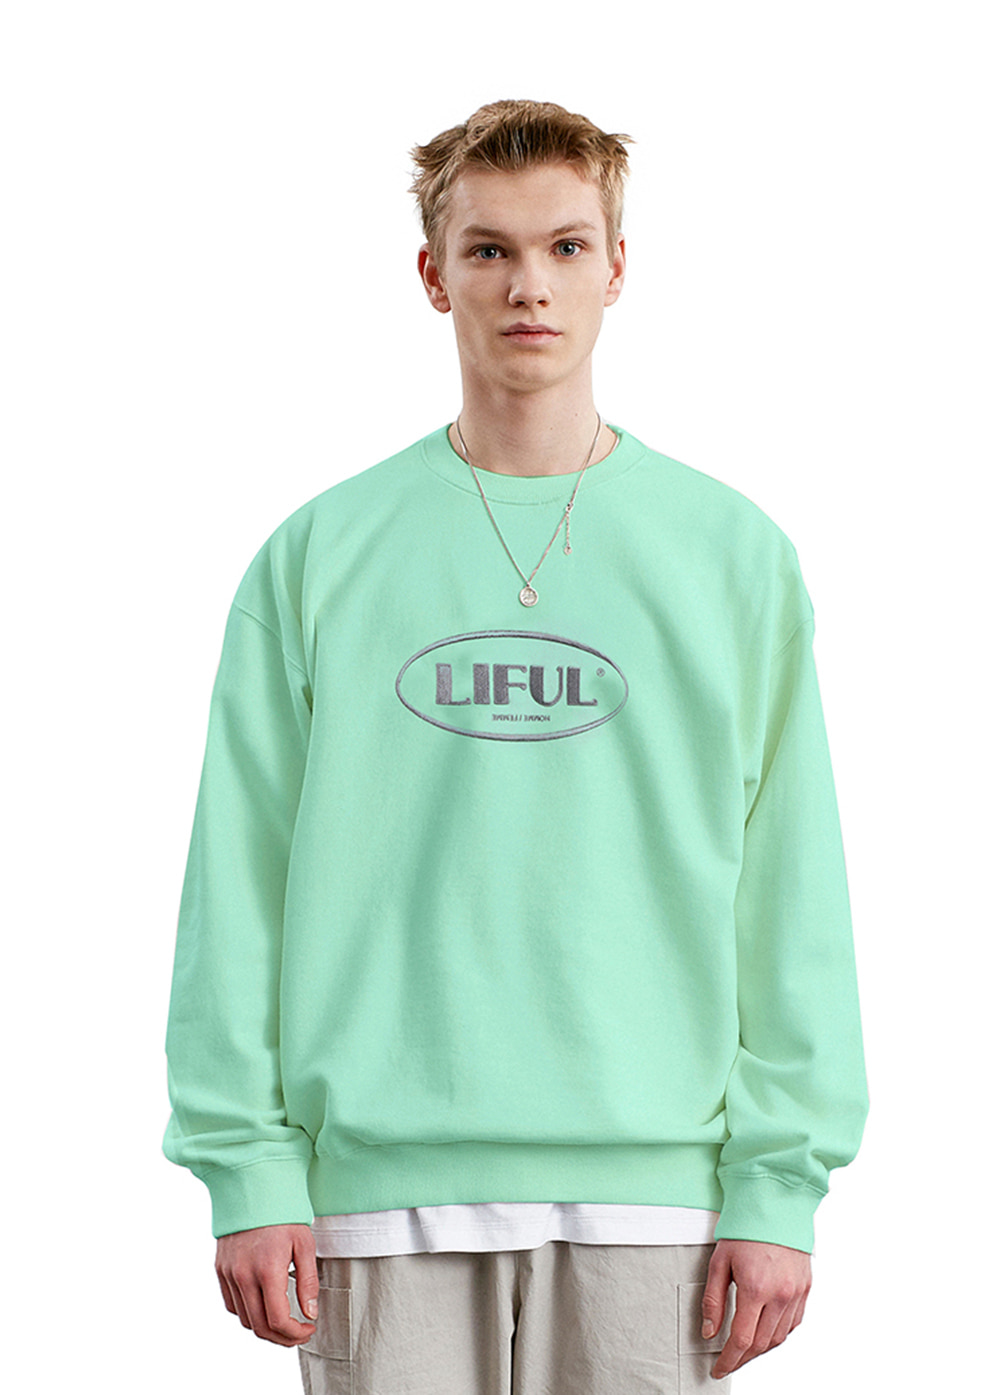 LIFUL OVAL LOGO SWEATSHIRT mint